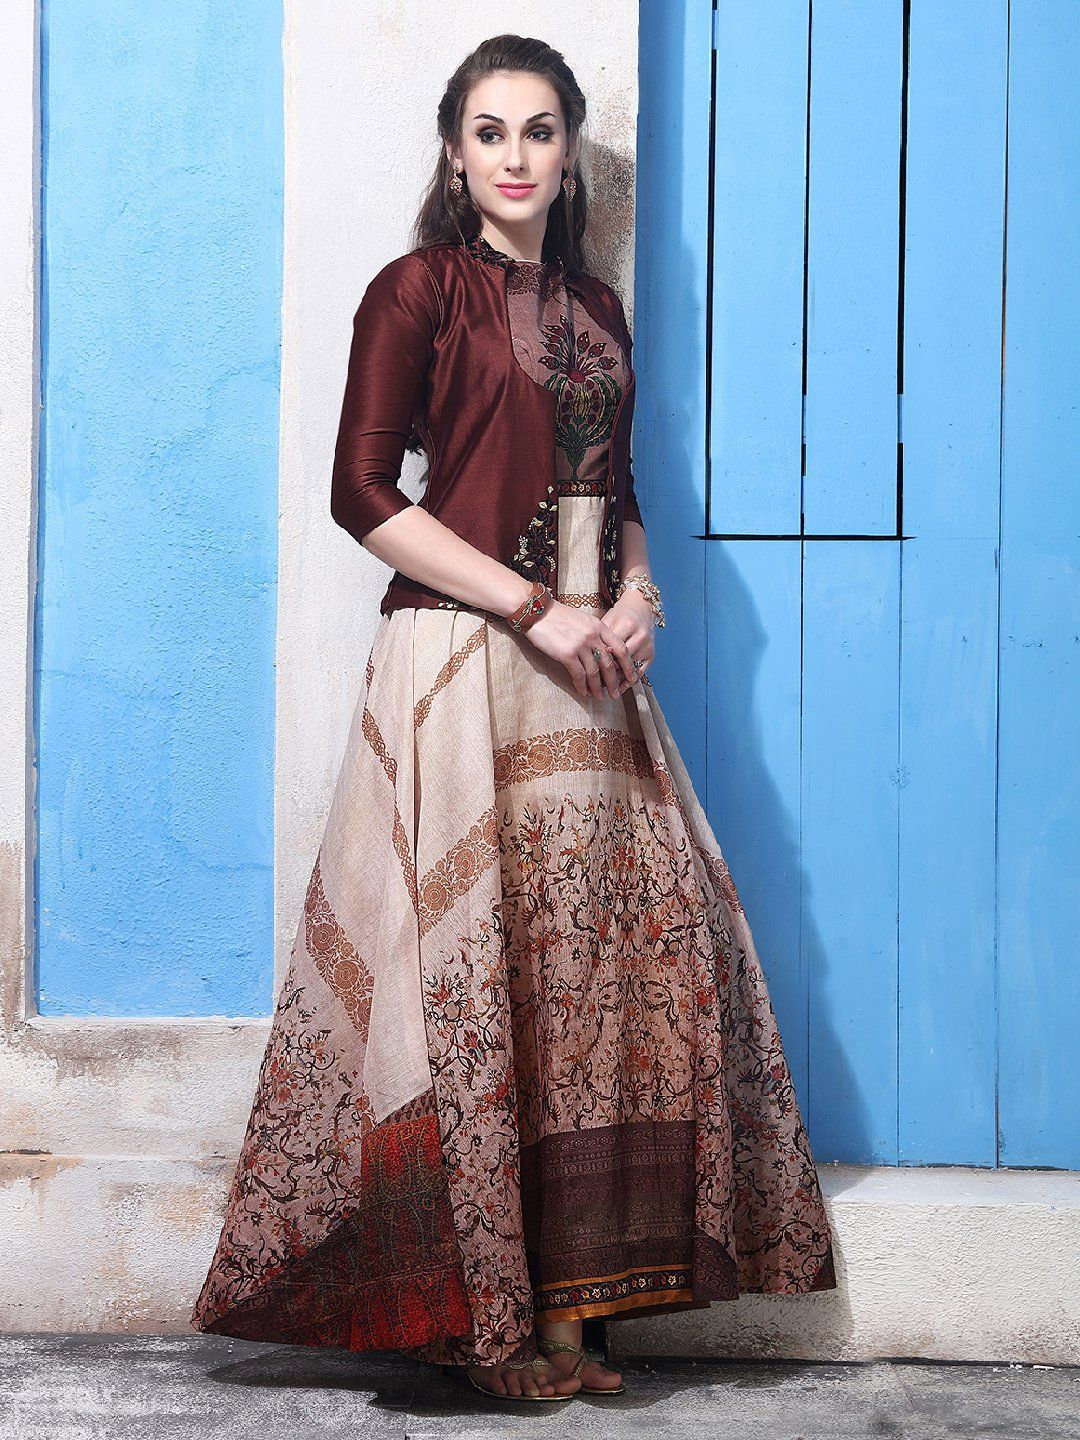 acfedee92d Shop Beige color cotton silk one piece suit online from G3fashion India.  Brand - G3, Product code - G3-WSS00370, Price - 7395, Color - Beige, ...